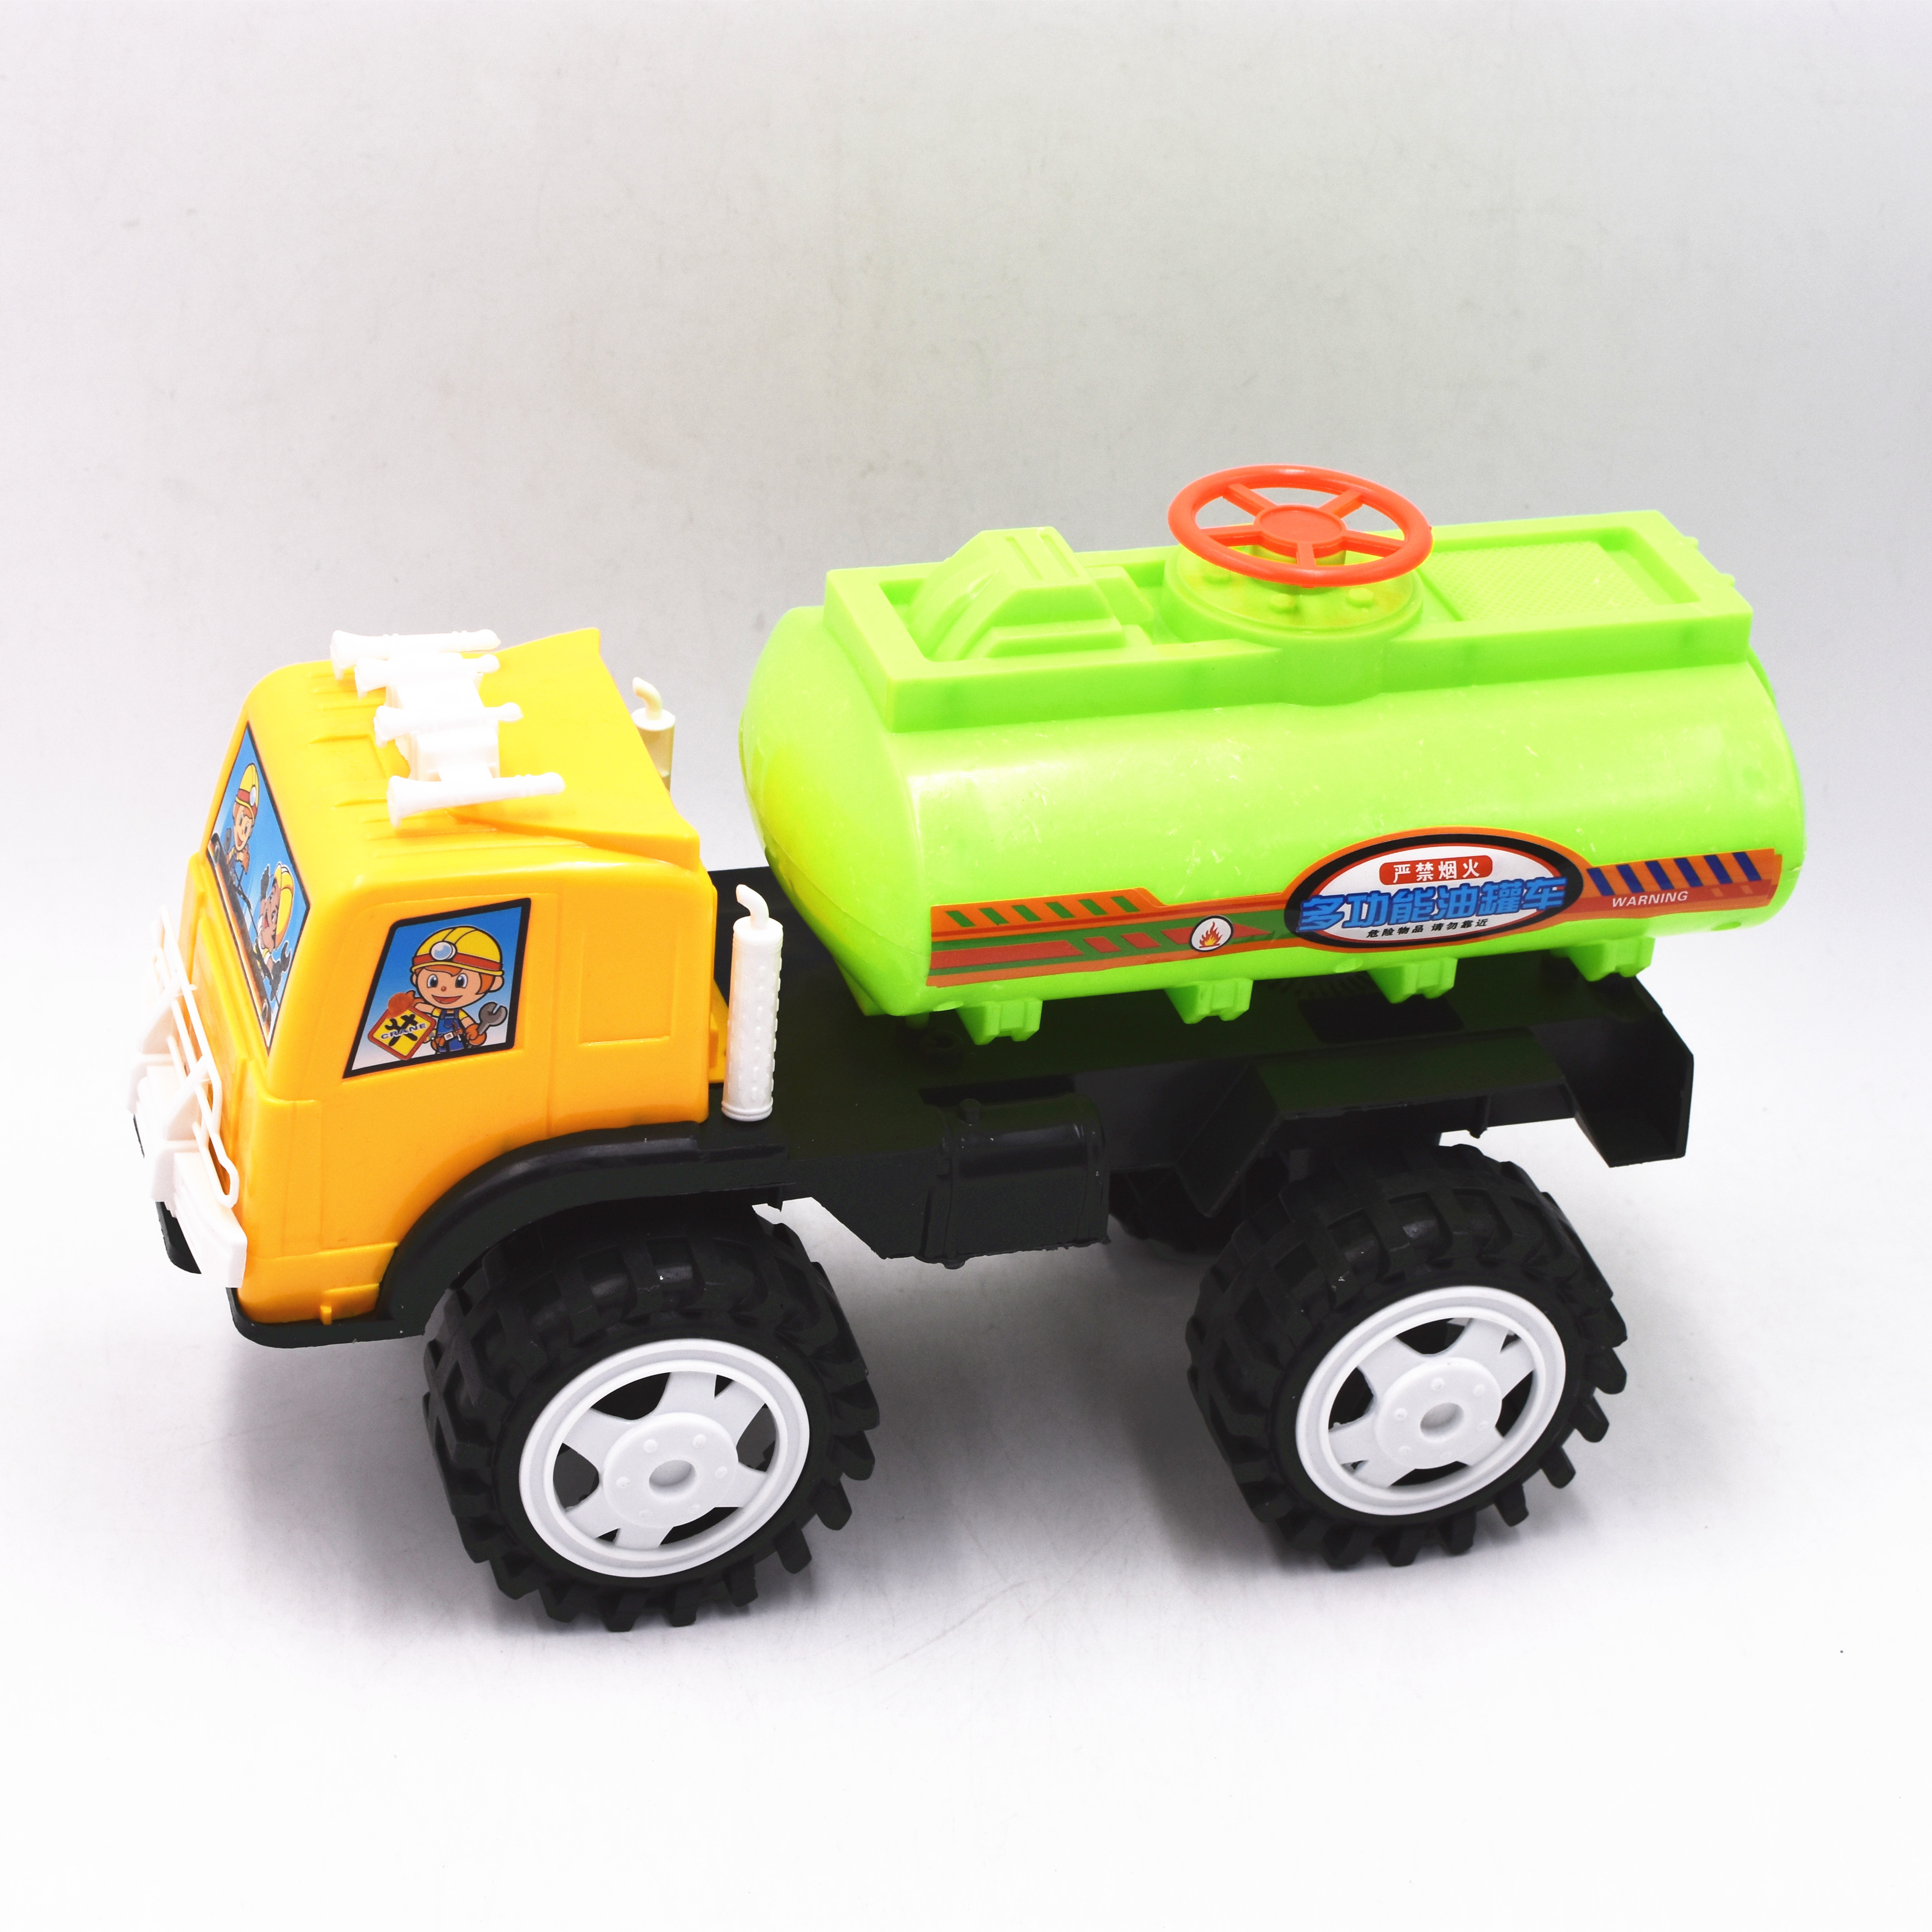 FREE WHEEL TRUCK TOY LY1729